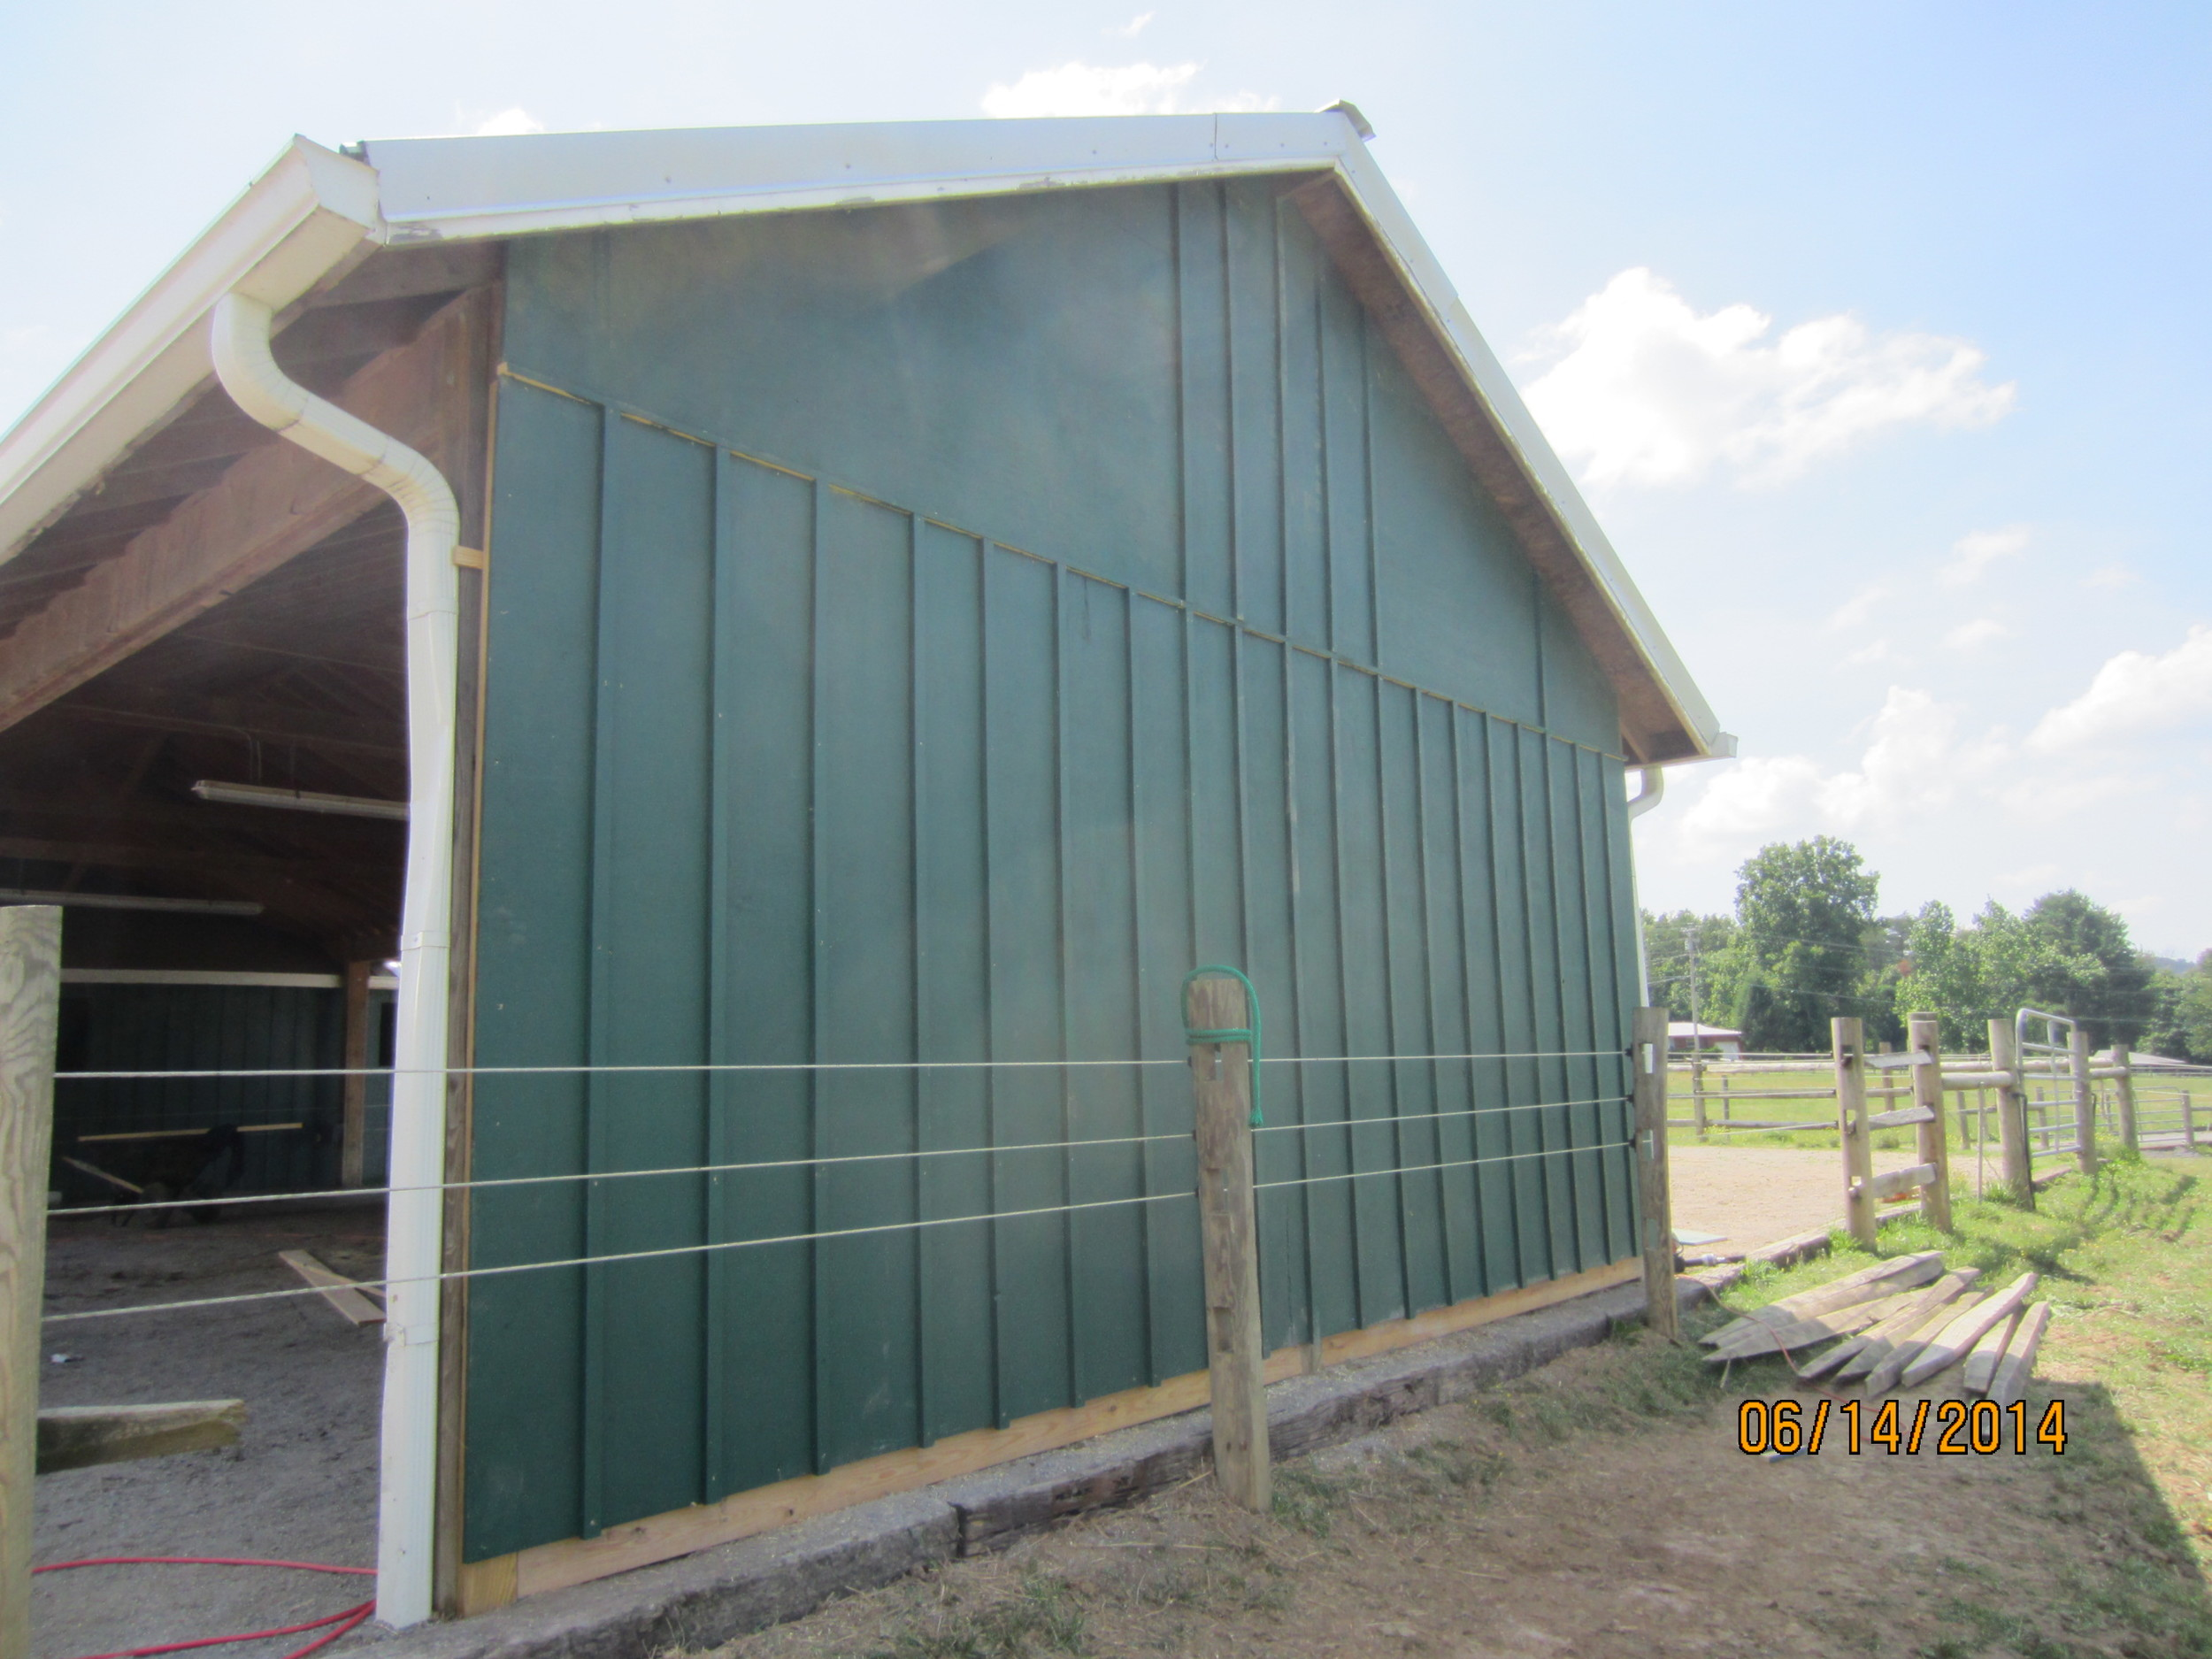 This is the finish of the end curtain wall on the stables. We ran out of material for the battens, so WVR staff will finish up on Monday.